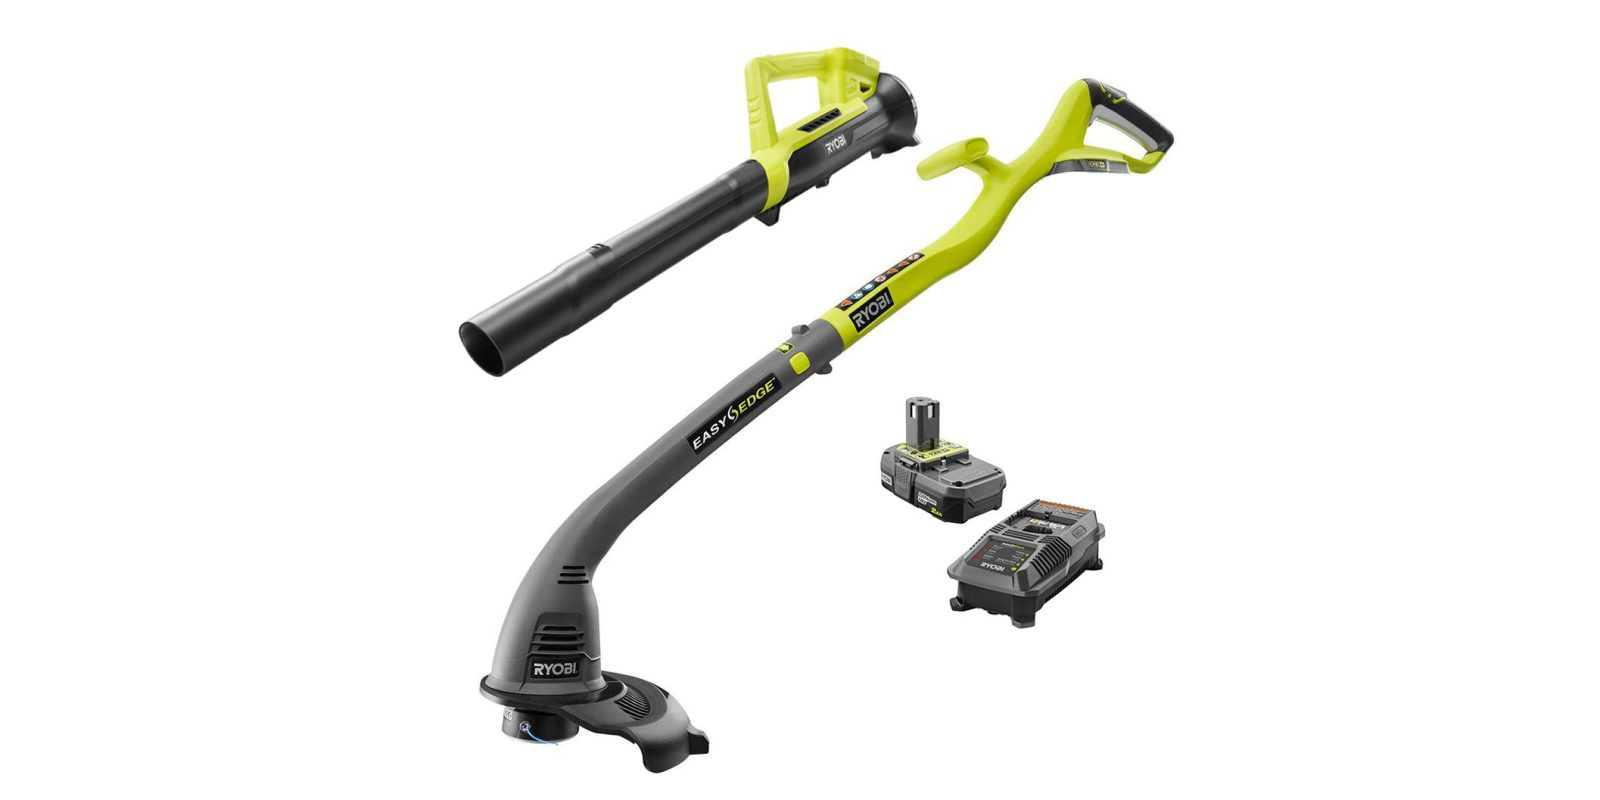 Pick up a Ryobi ONE+ 18V Electric Trimmer and Blower for $99, more